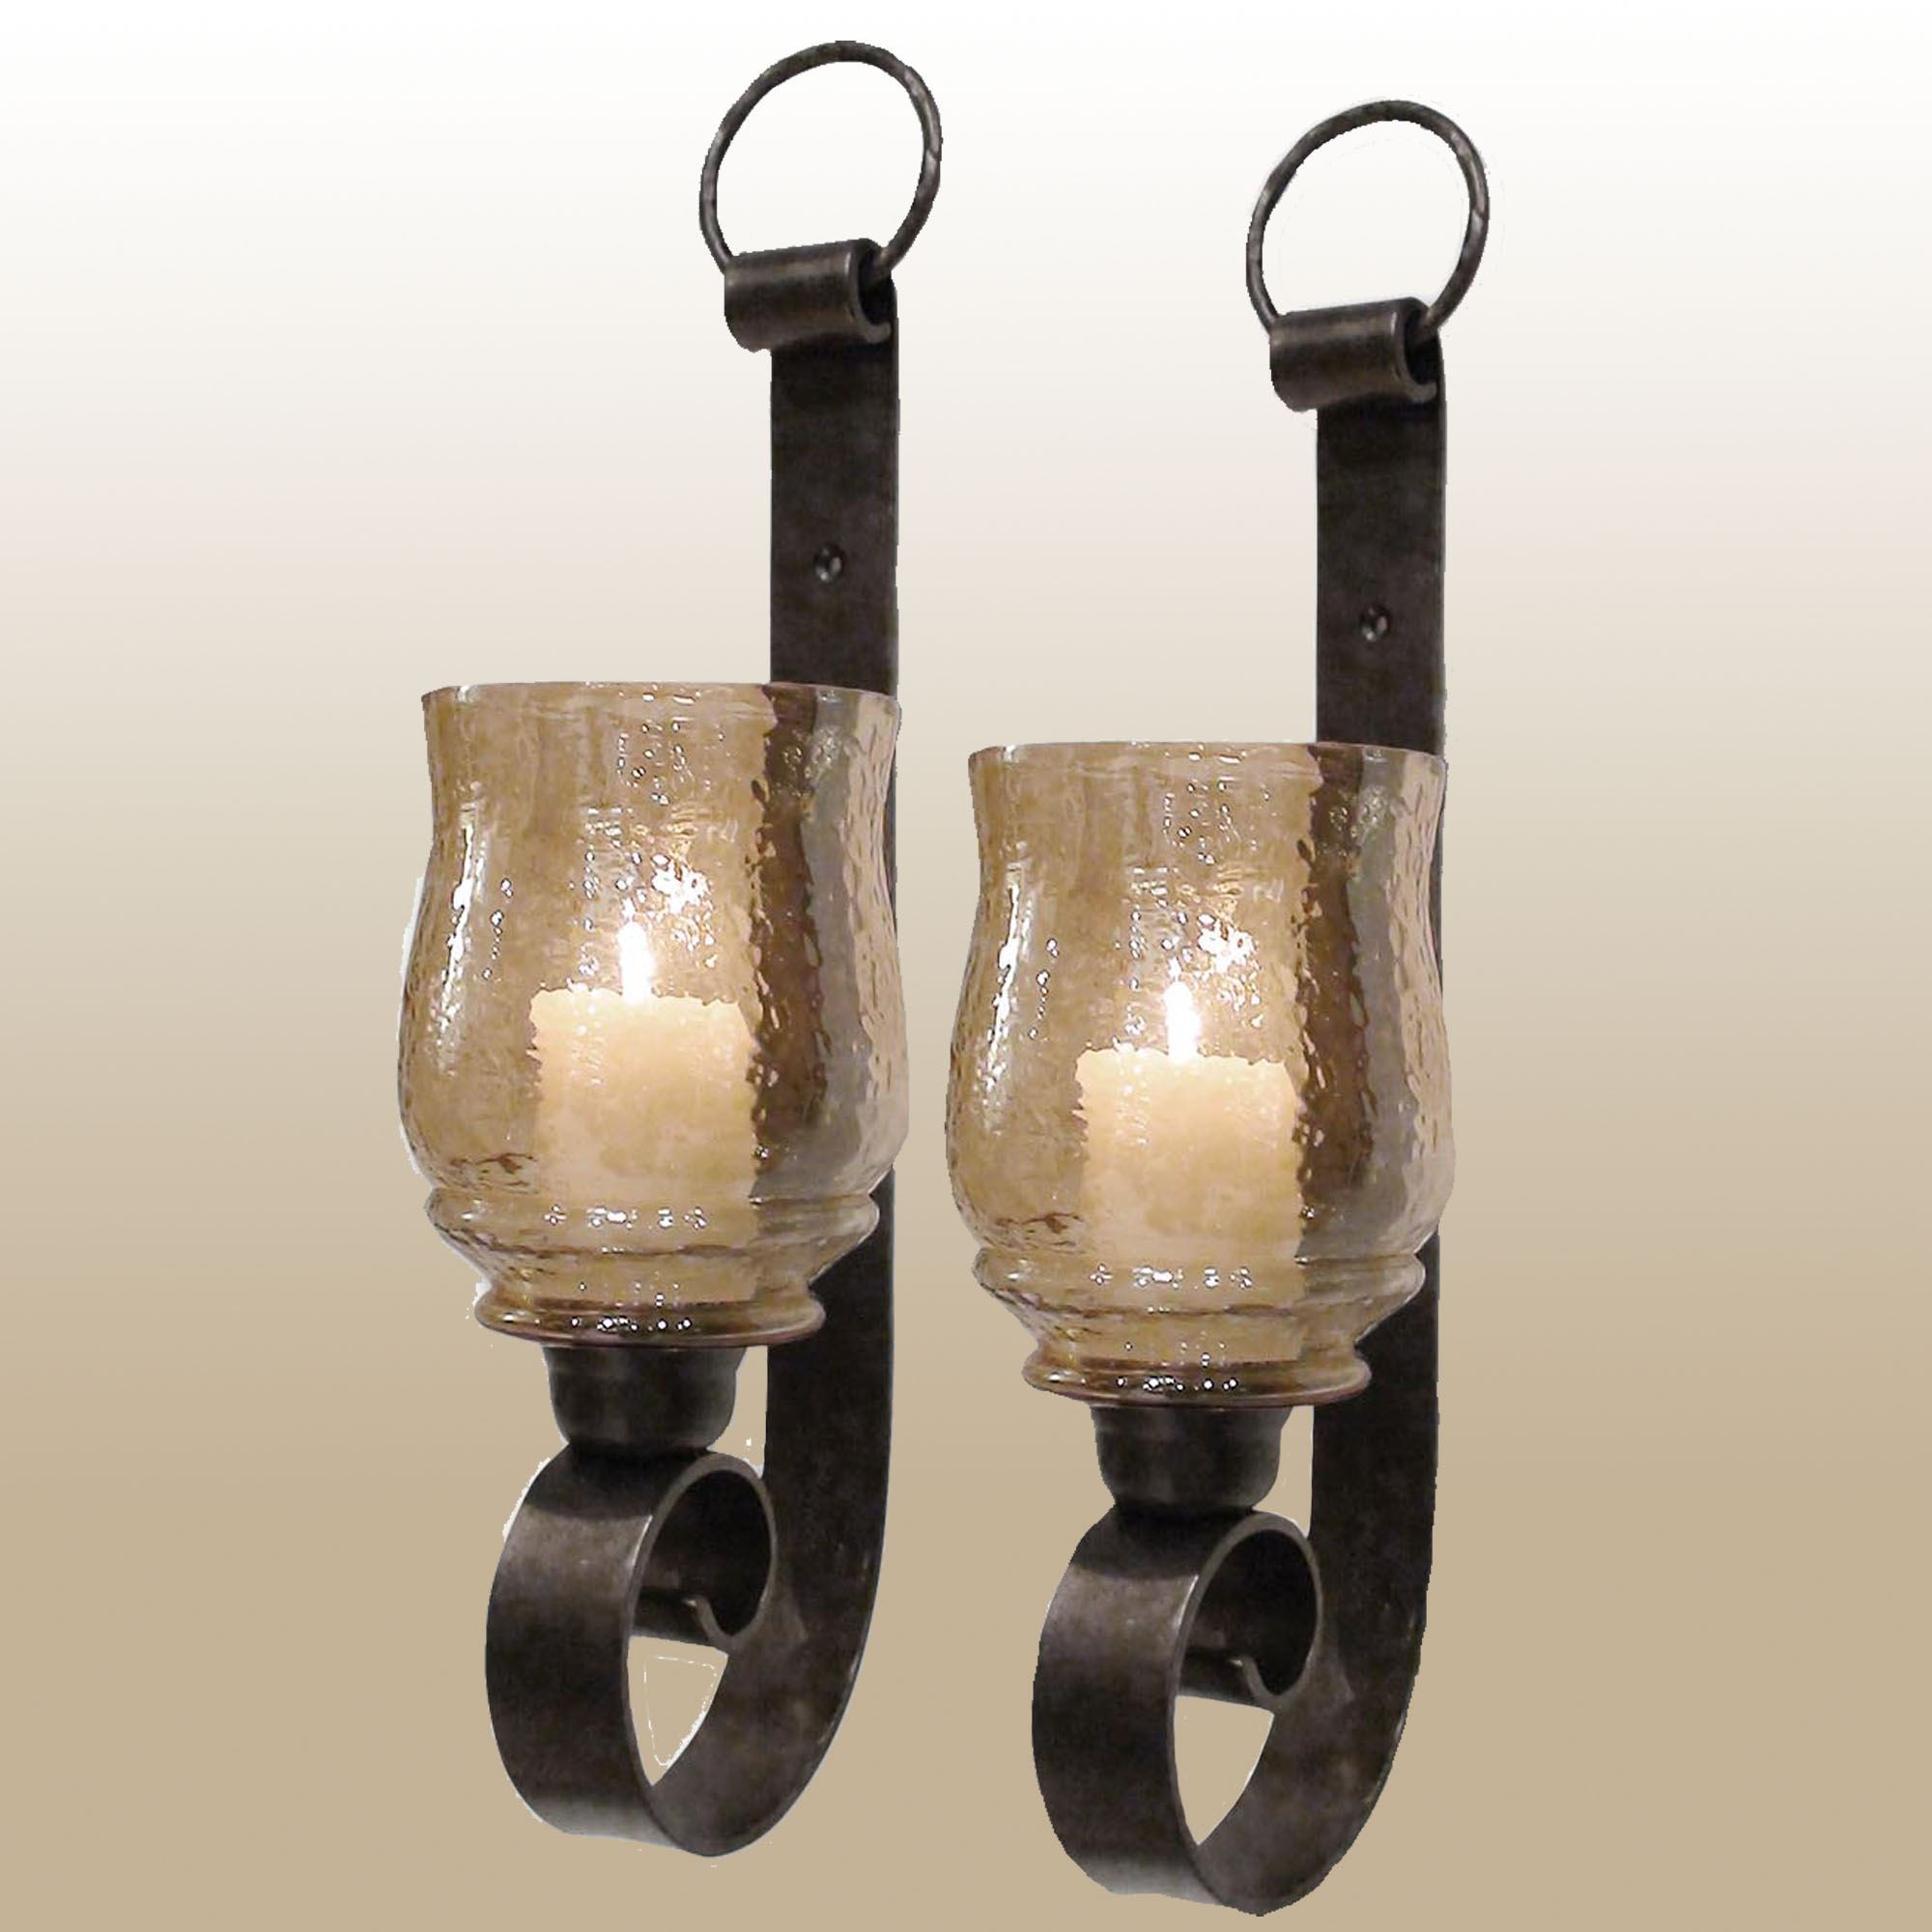 Dashielle Hurricane Wall Sconce Pair With Candles